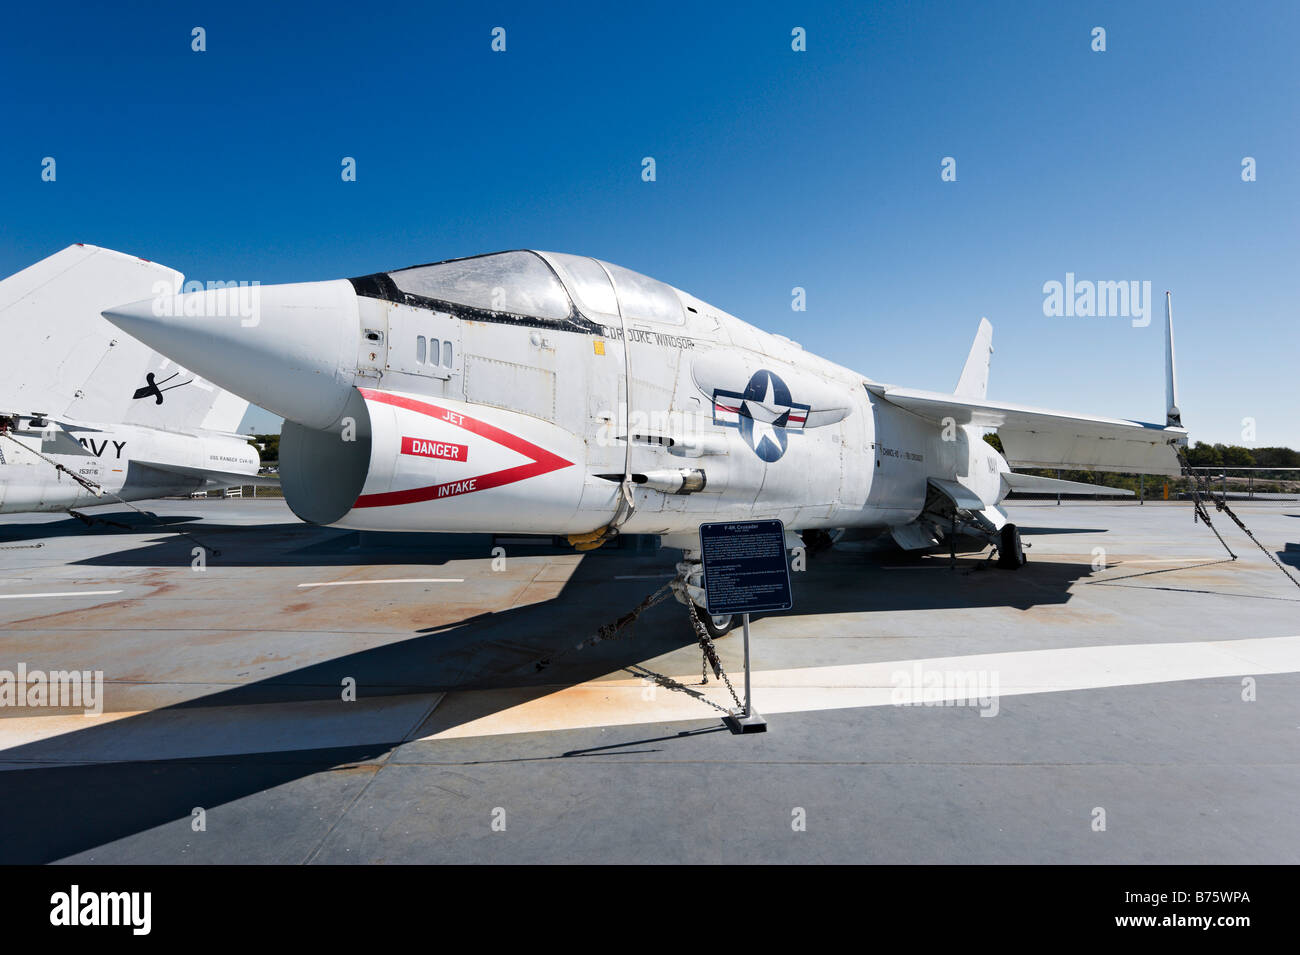 F-8K Crusader fighter aircraft on deck of USS Yorktown aircraft carrier, Patriots Point Naval Museum, Charleston, - Stock Image